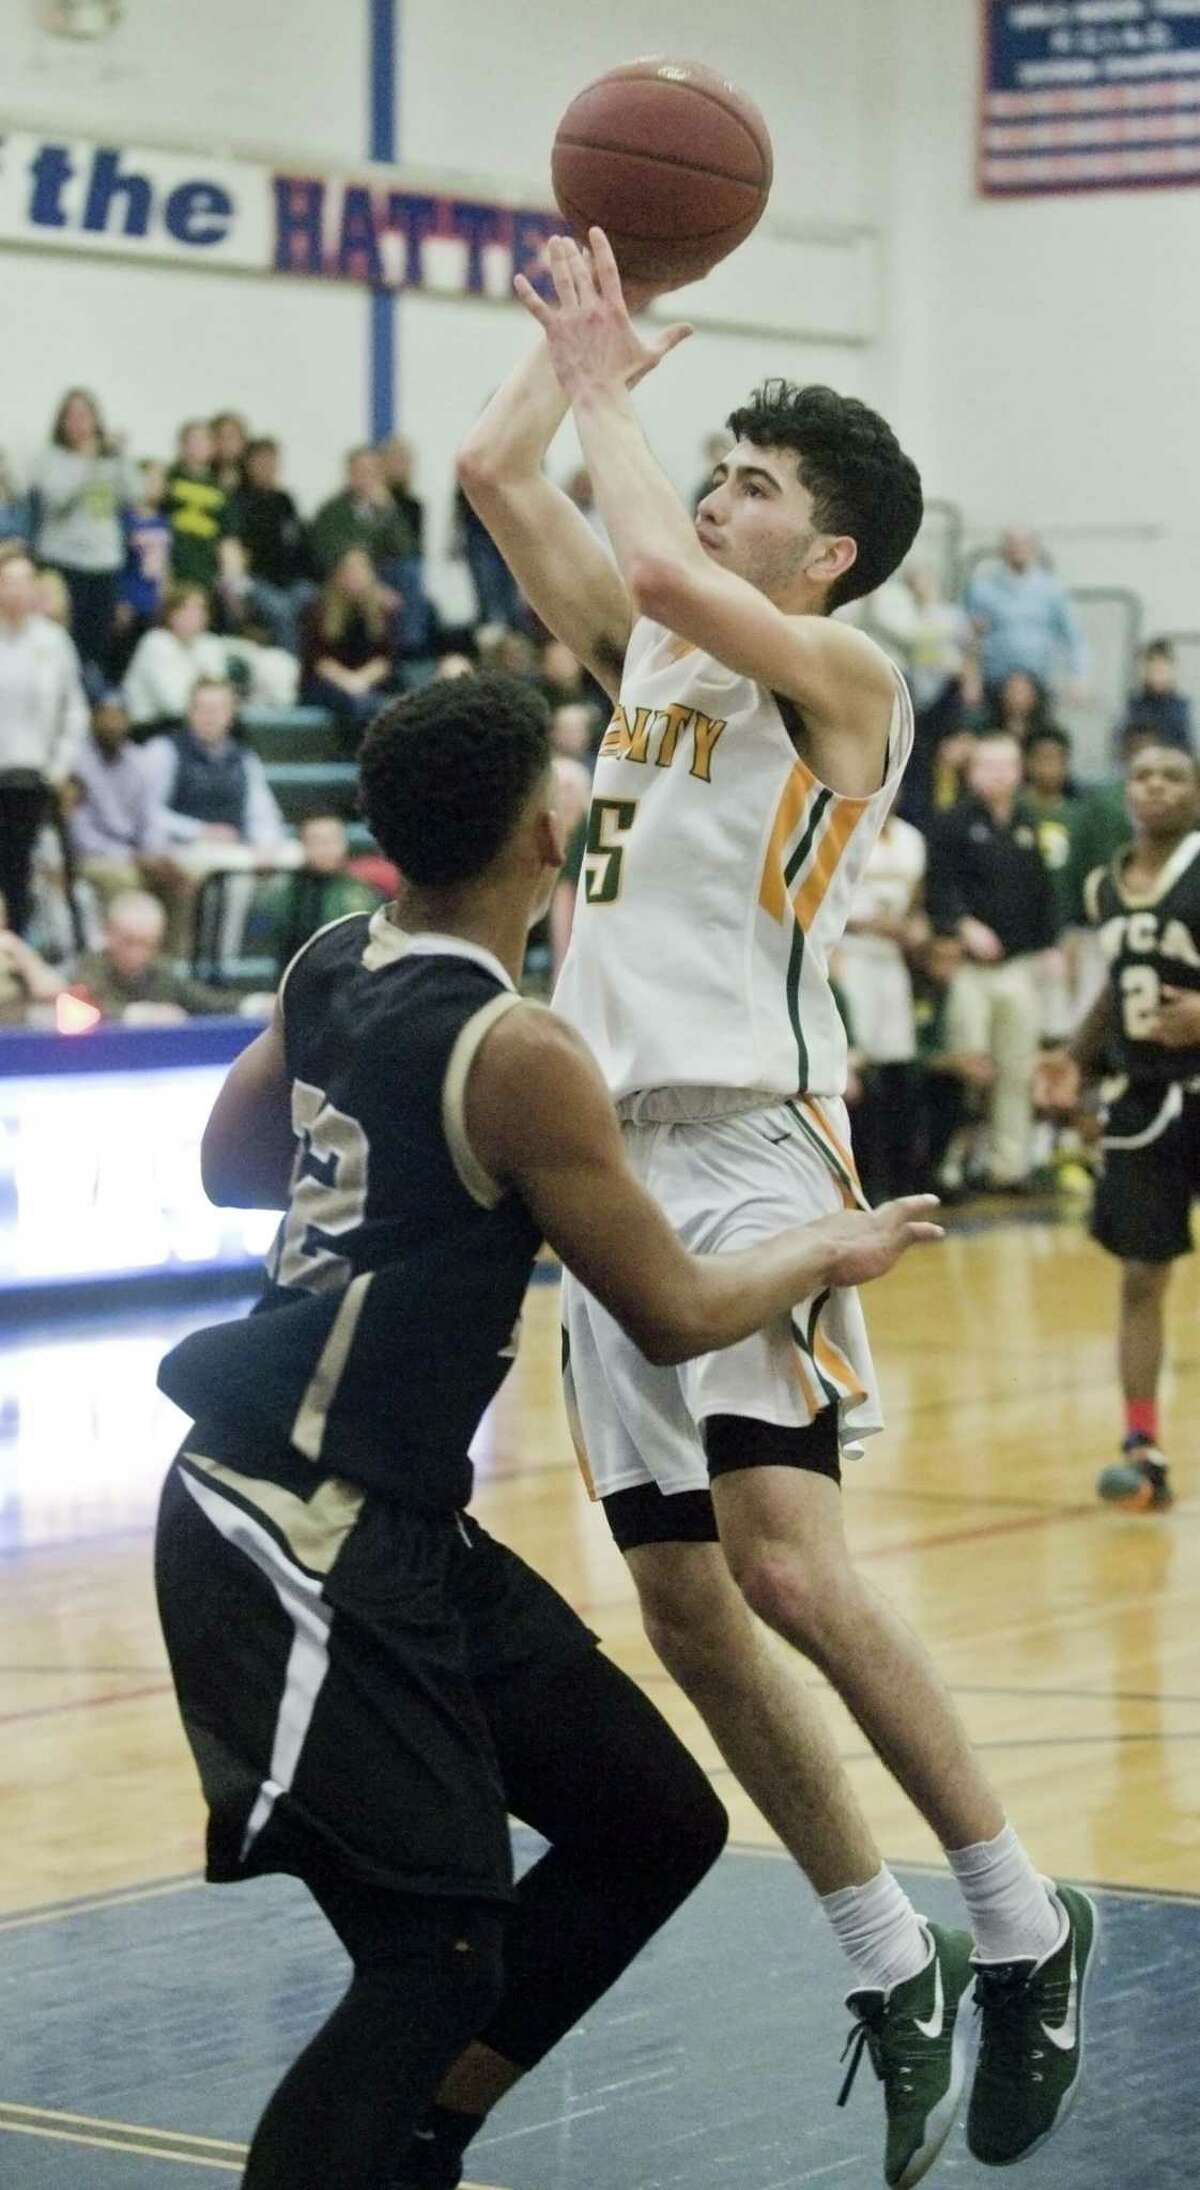 Trinity Catholic High School's Peter Galgano stretches for the shot during the semifinals against Waterbury Career Academy, played at Danbury High School. Thursday, March 16, 2017